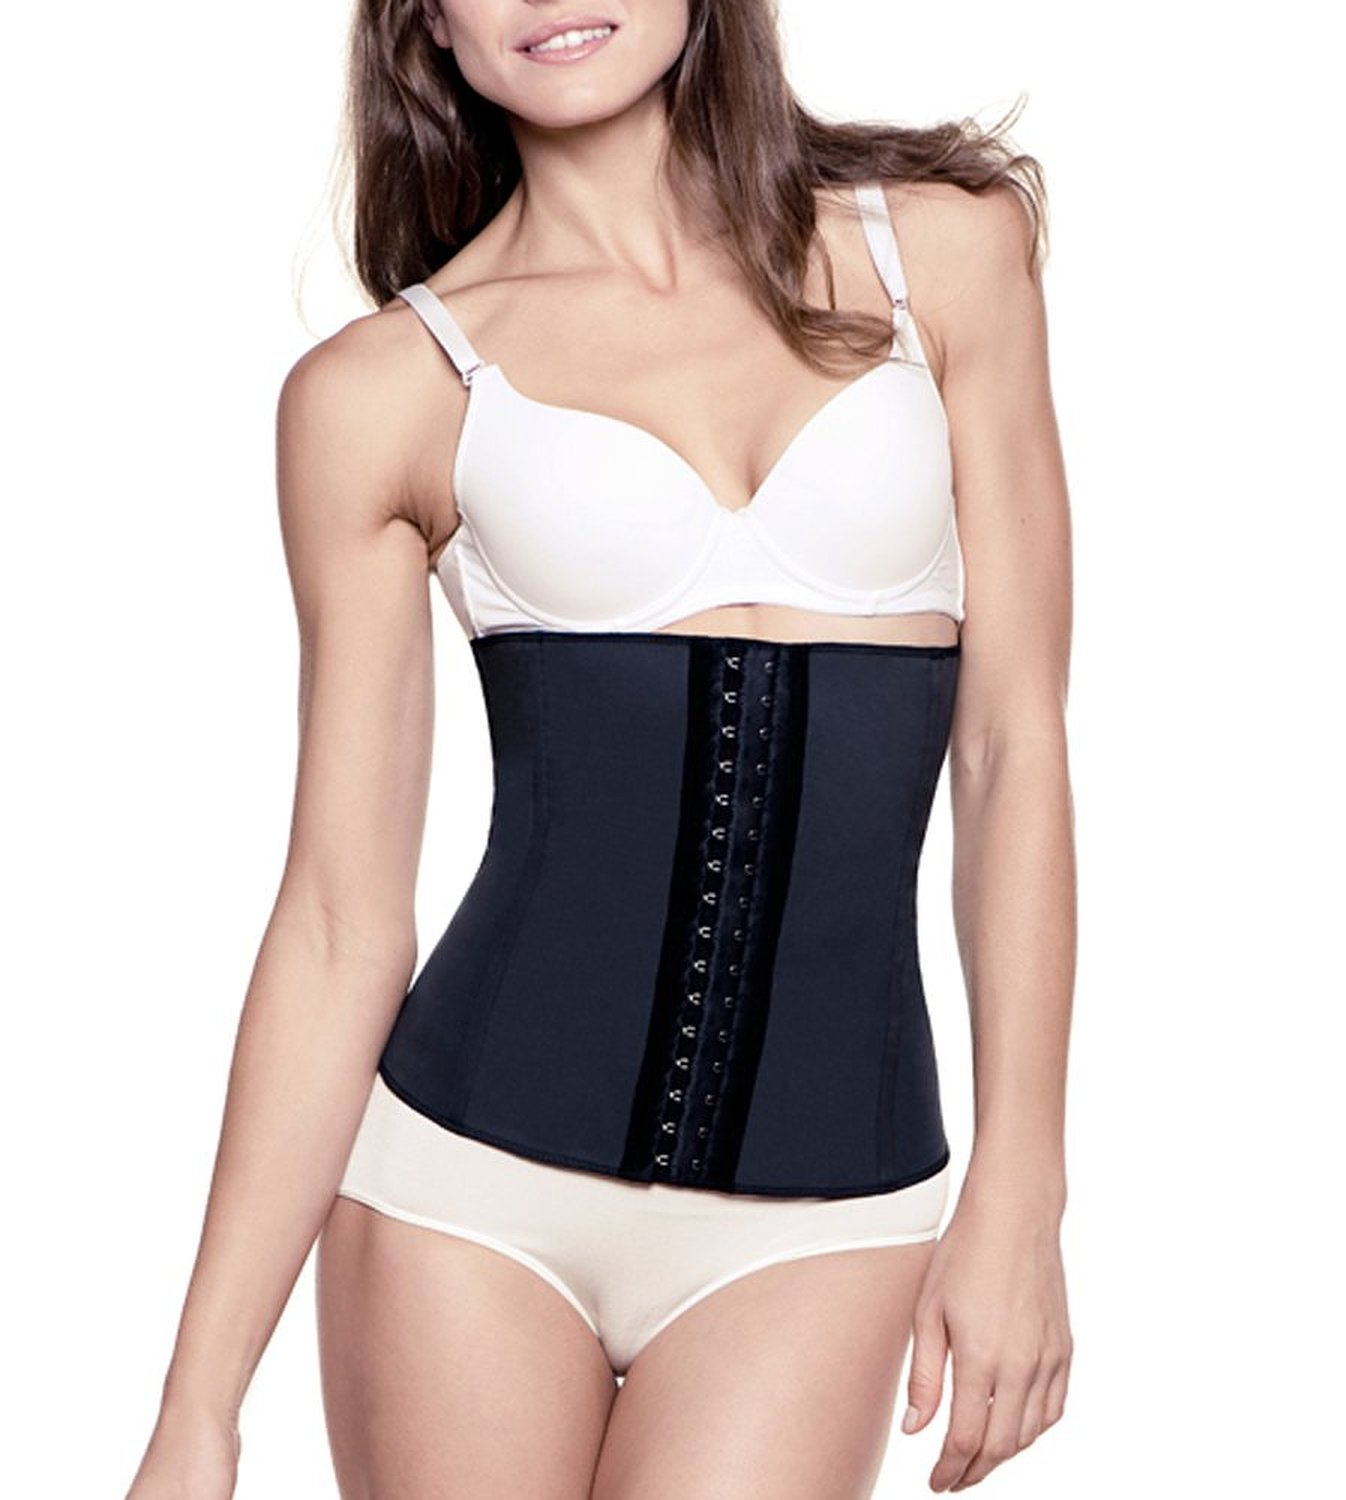 Classic Cincher Waist Trainer by Amia A102 Black